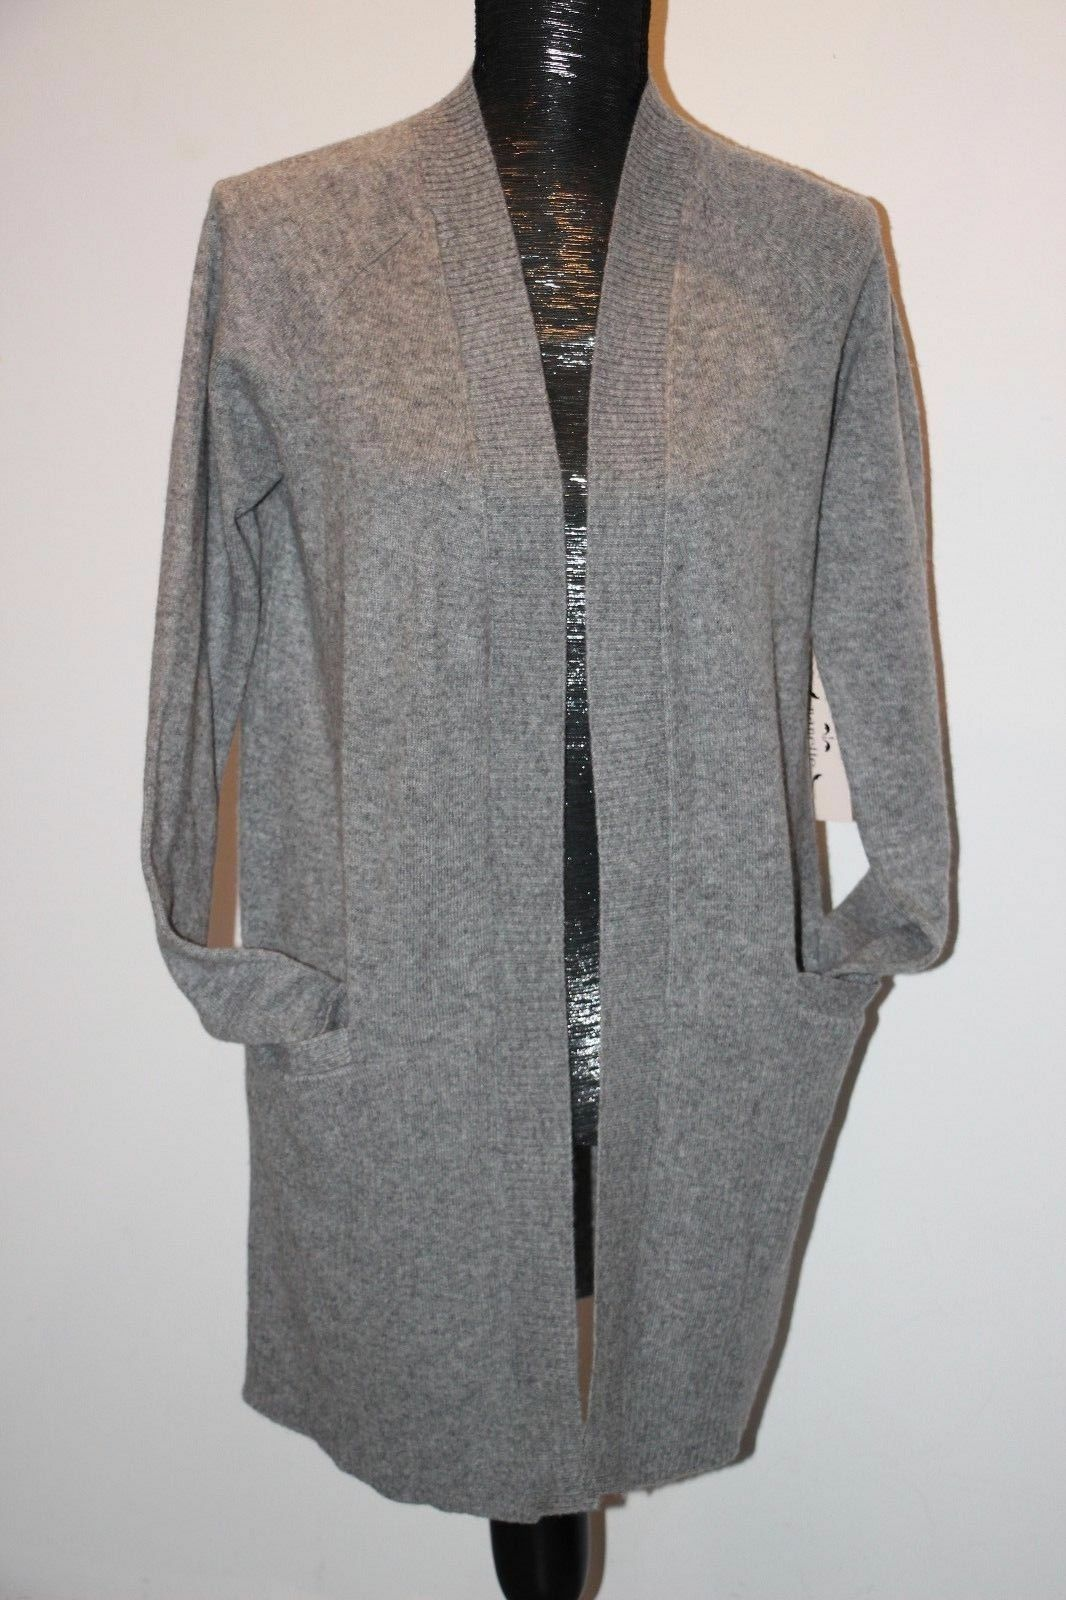 Nanette Lepore Luxury 2-ply Cashmere Ribbed Panels Knit Cardigan Sweater S, M